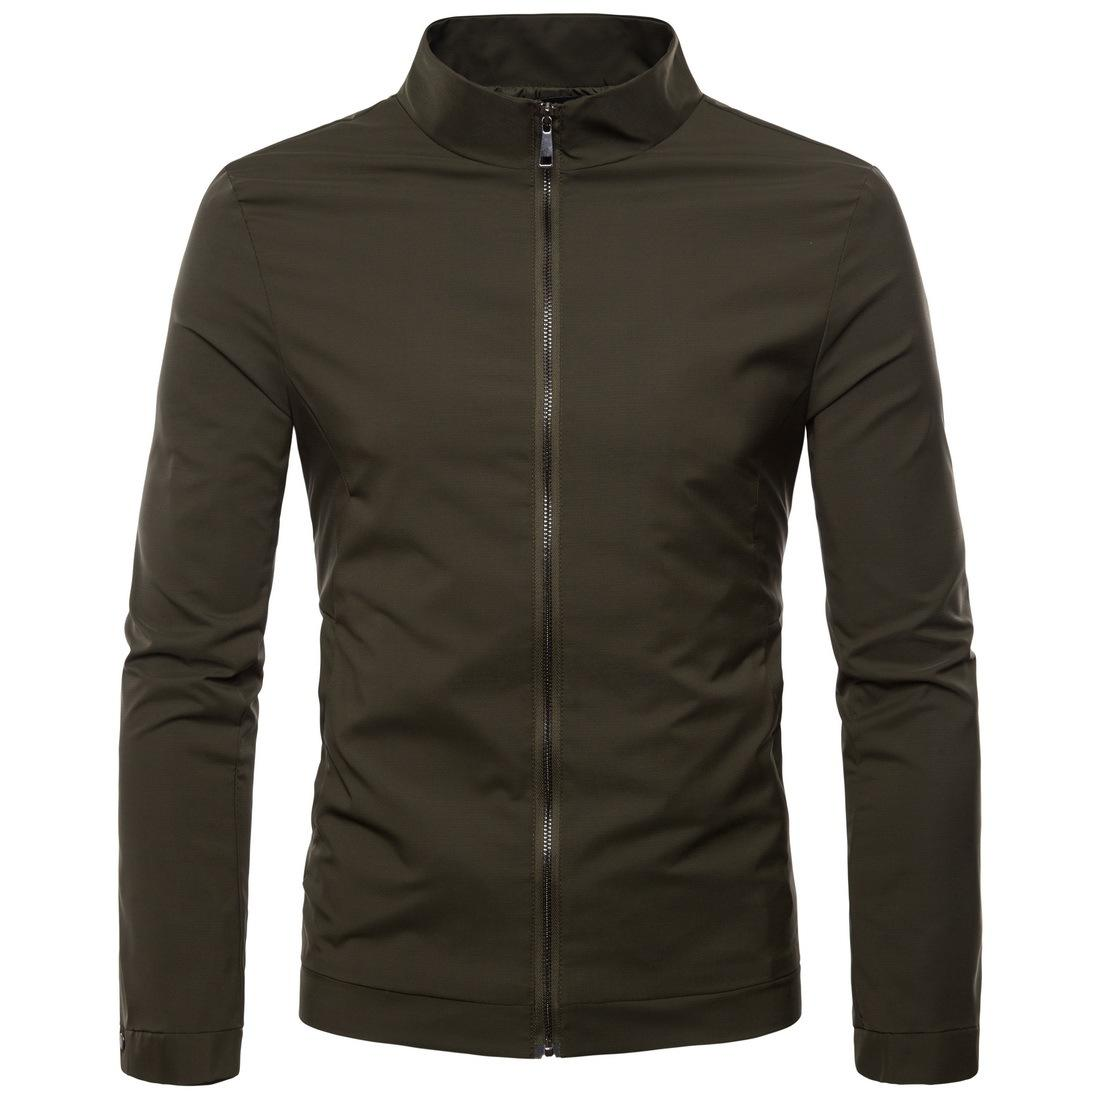 Mens Jackets Coat Autumn High Quality Male Stand Collar Solid Jacket Cardigan Long Sleeve Men Outwear S-2XL J180748